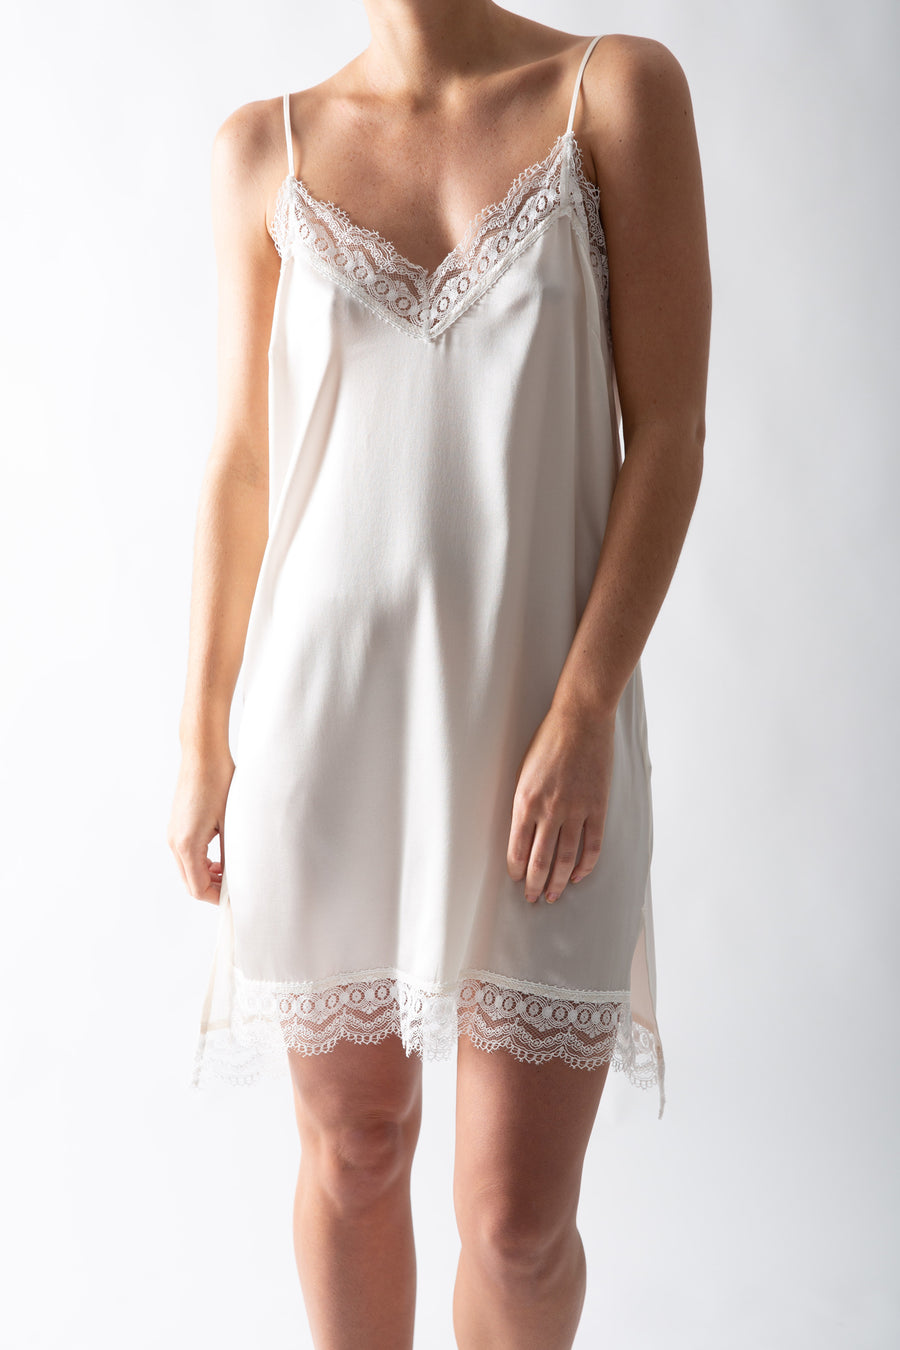 This is a photo of a woman from the neck down, wearing an ivory silk slip dress.